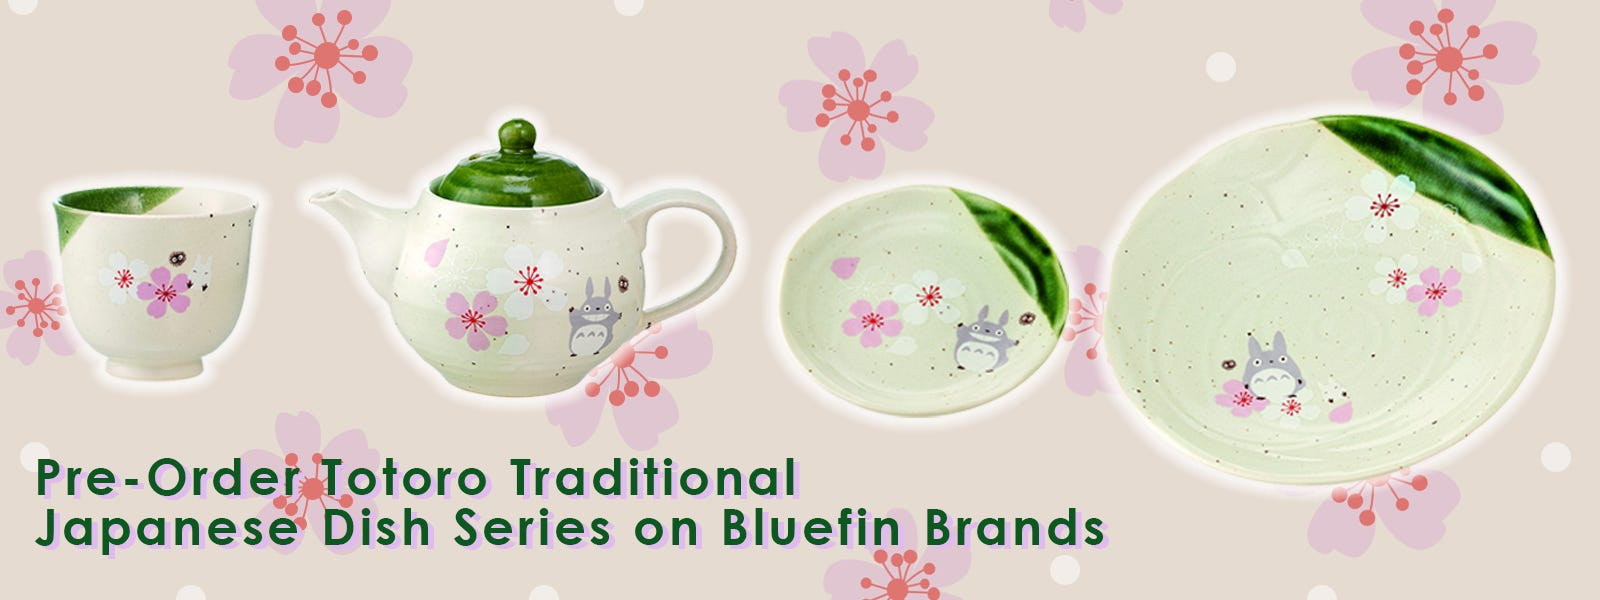 Pre-Order Totoro Traditional Japanese Dish Series on Bluefin Brands